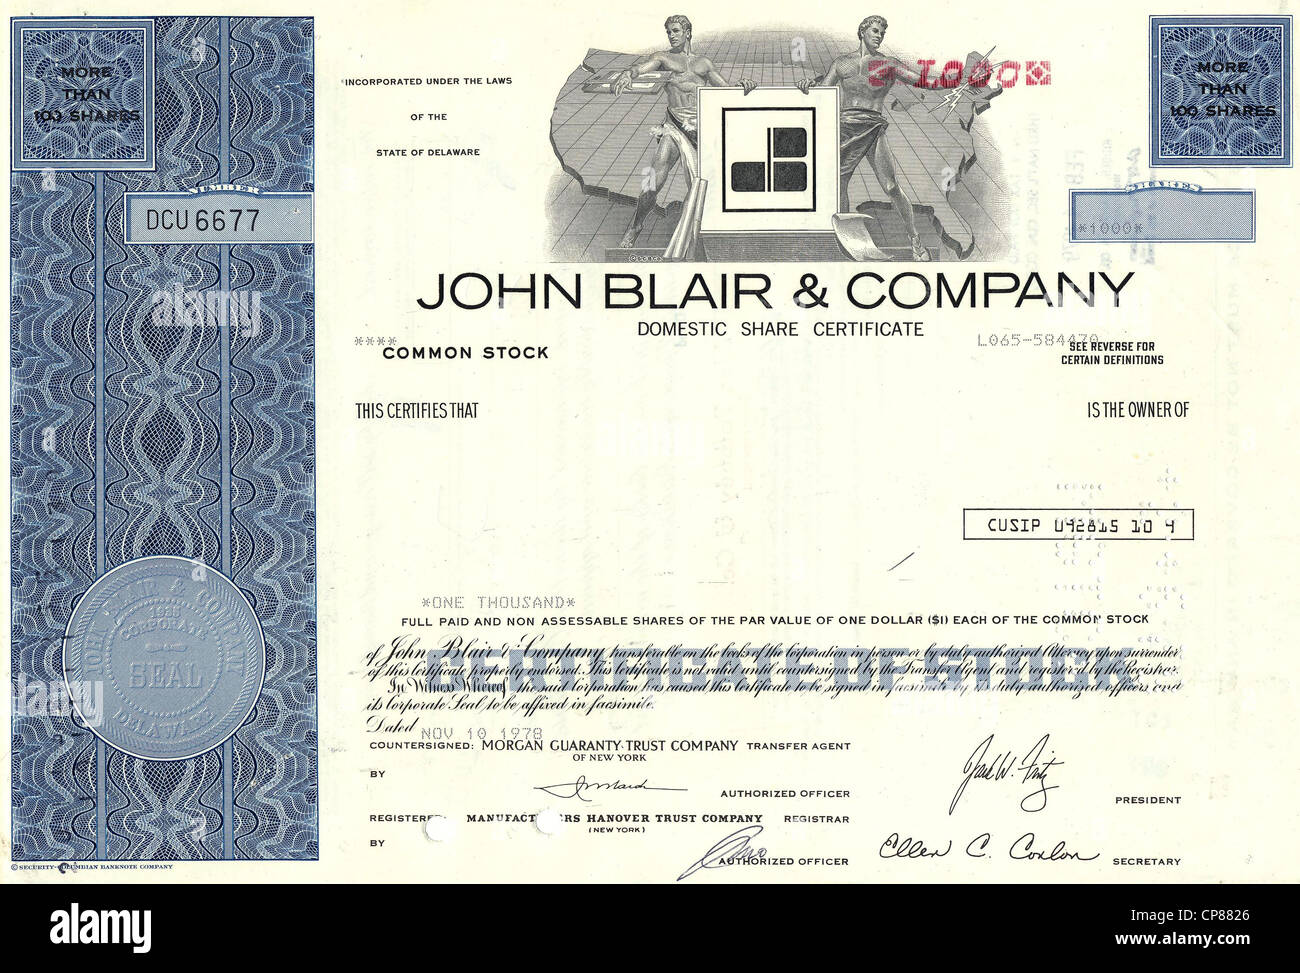 John Blair & Company, 1978, Delaware, USA, Historical stock certificate, television stations, post office - Stock Image